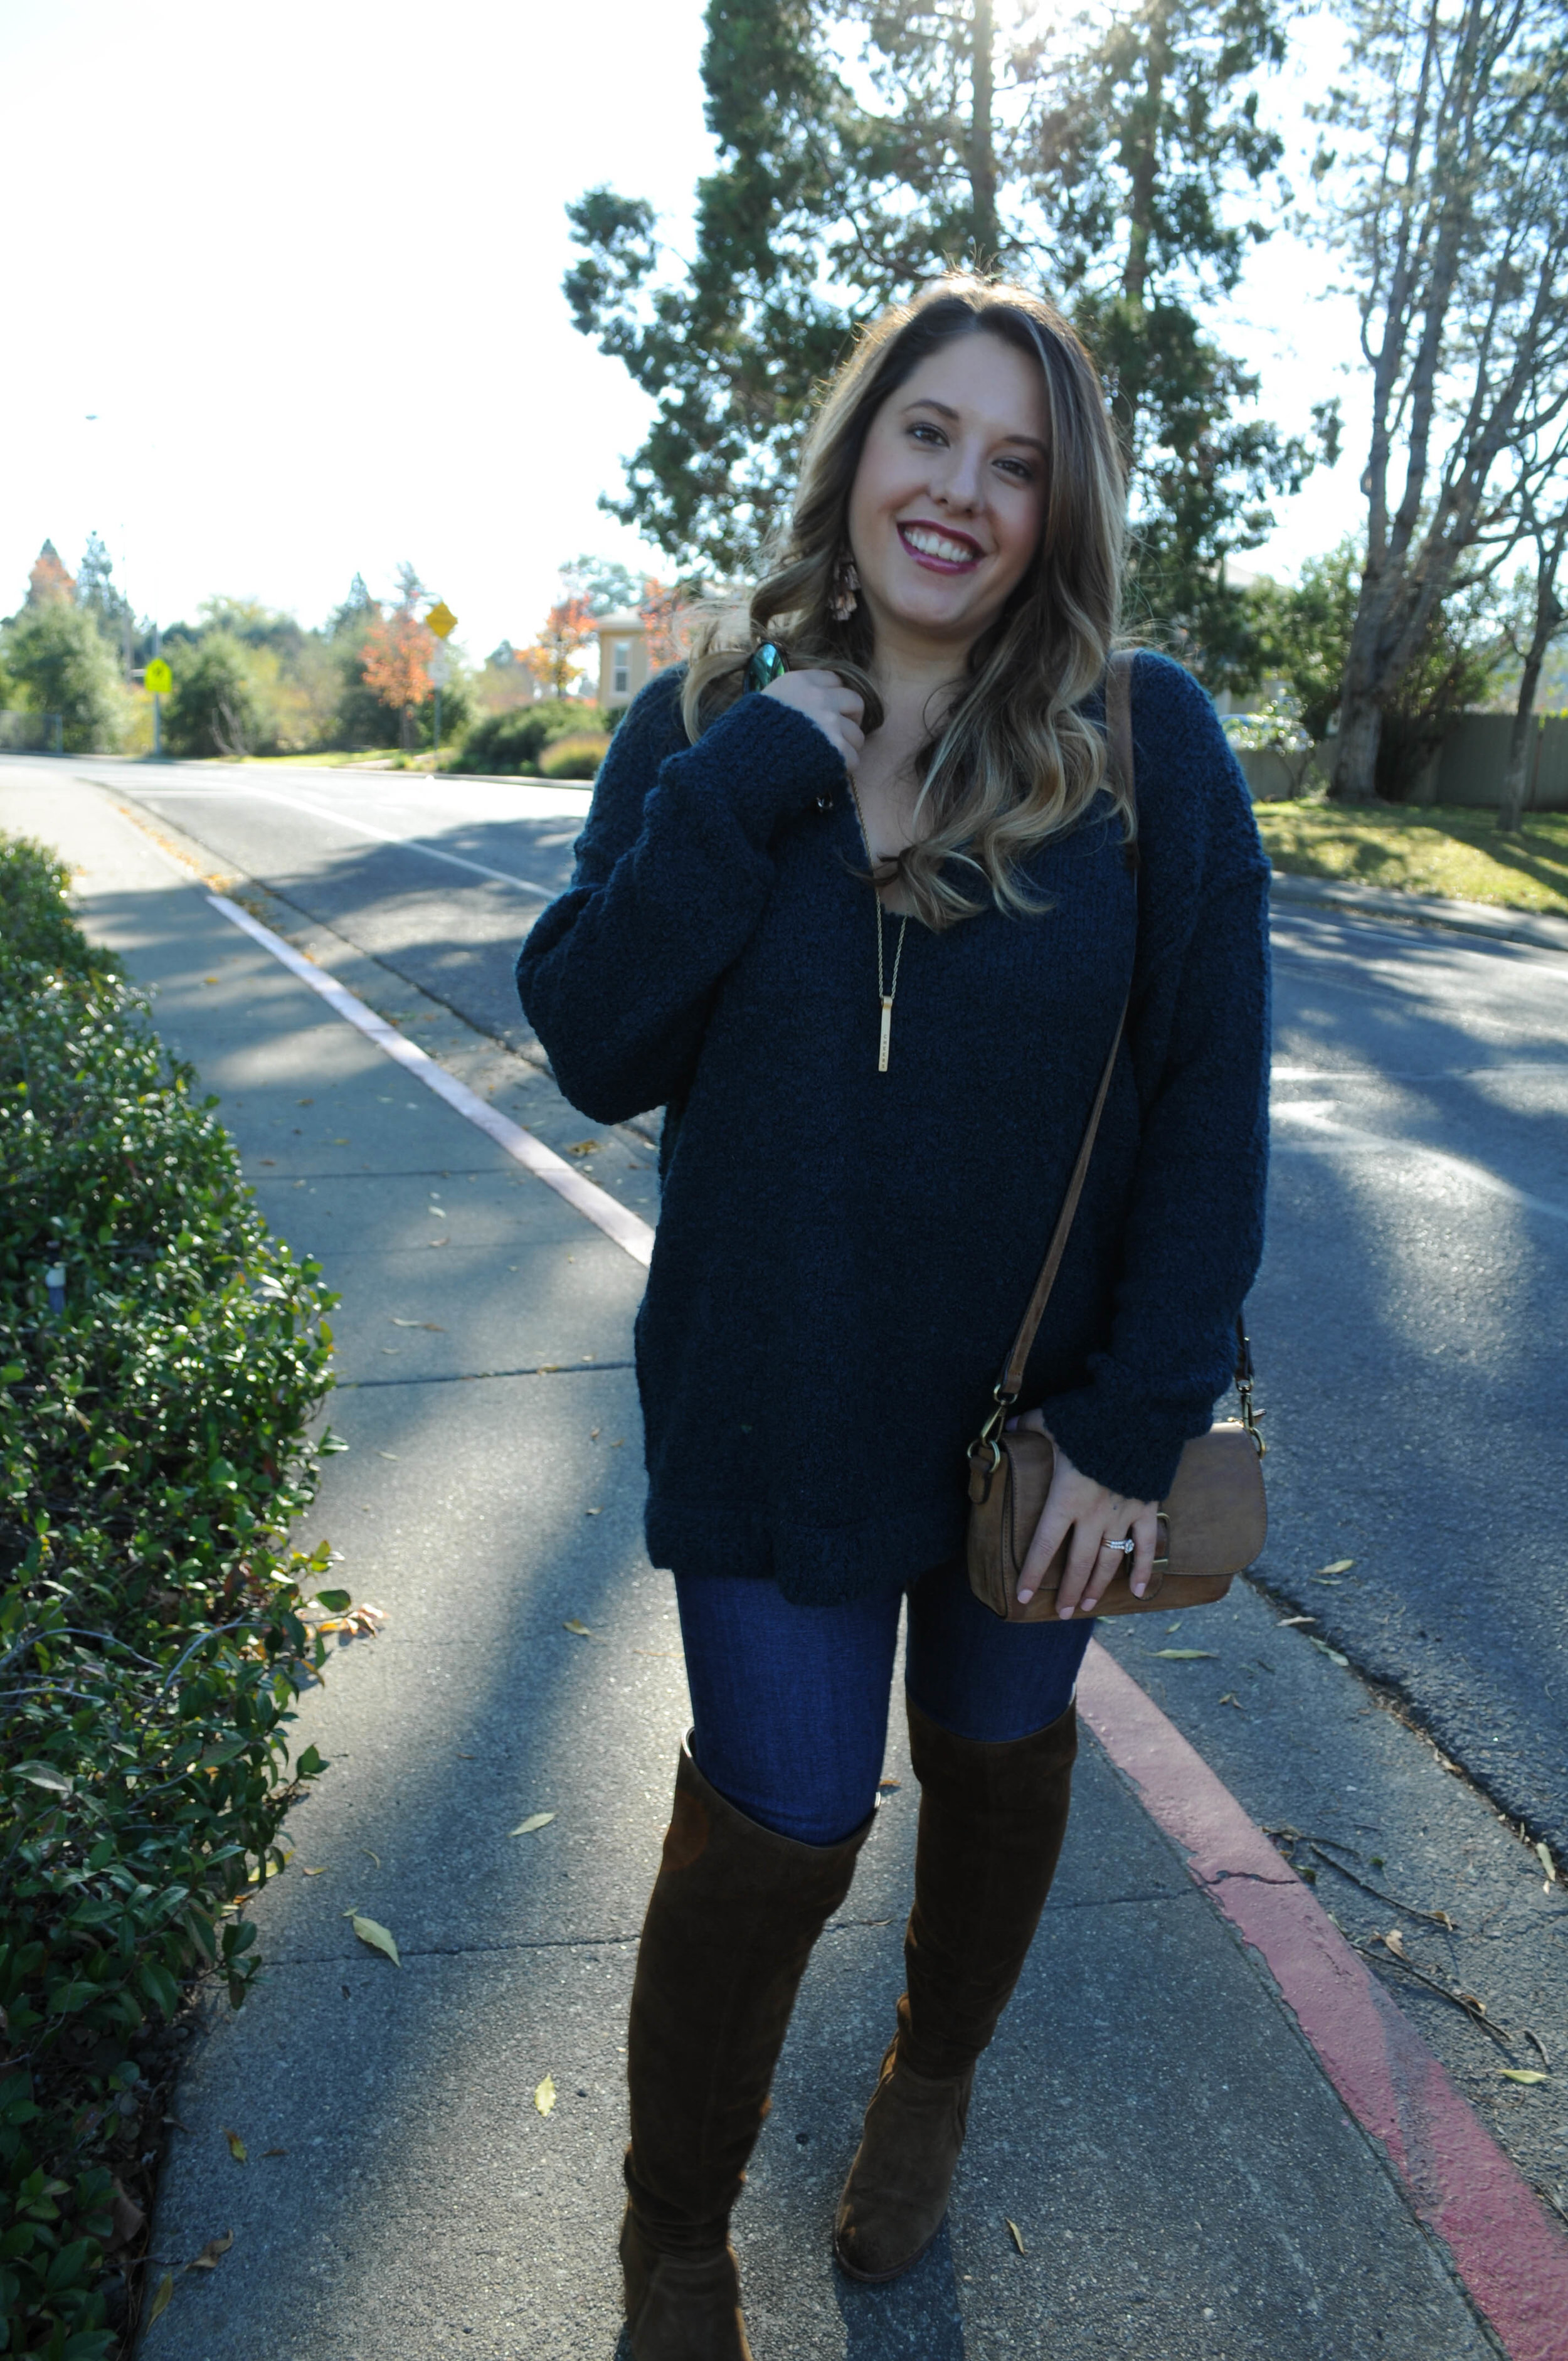 Details // Free People Boucle Oversized Sweater, Joes Jeans, Vince Camuto OTK Boots, Wilde earrings.